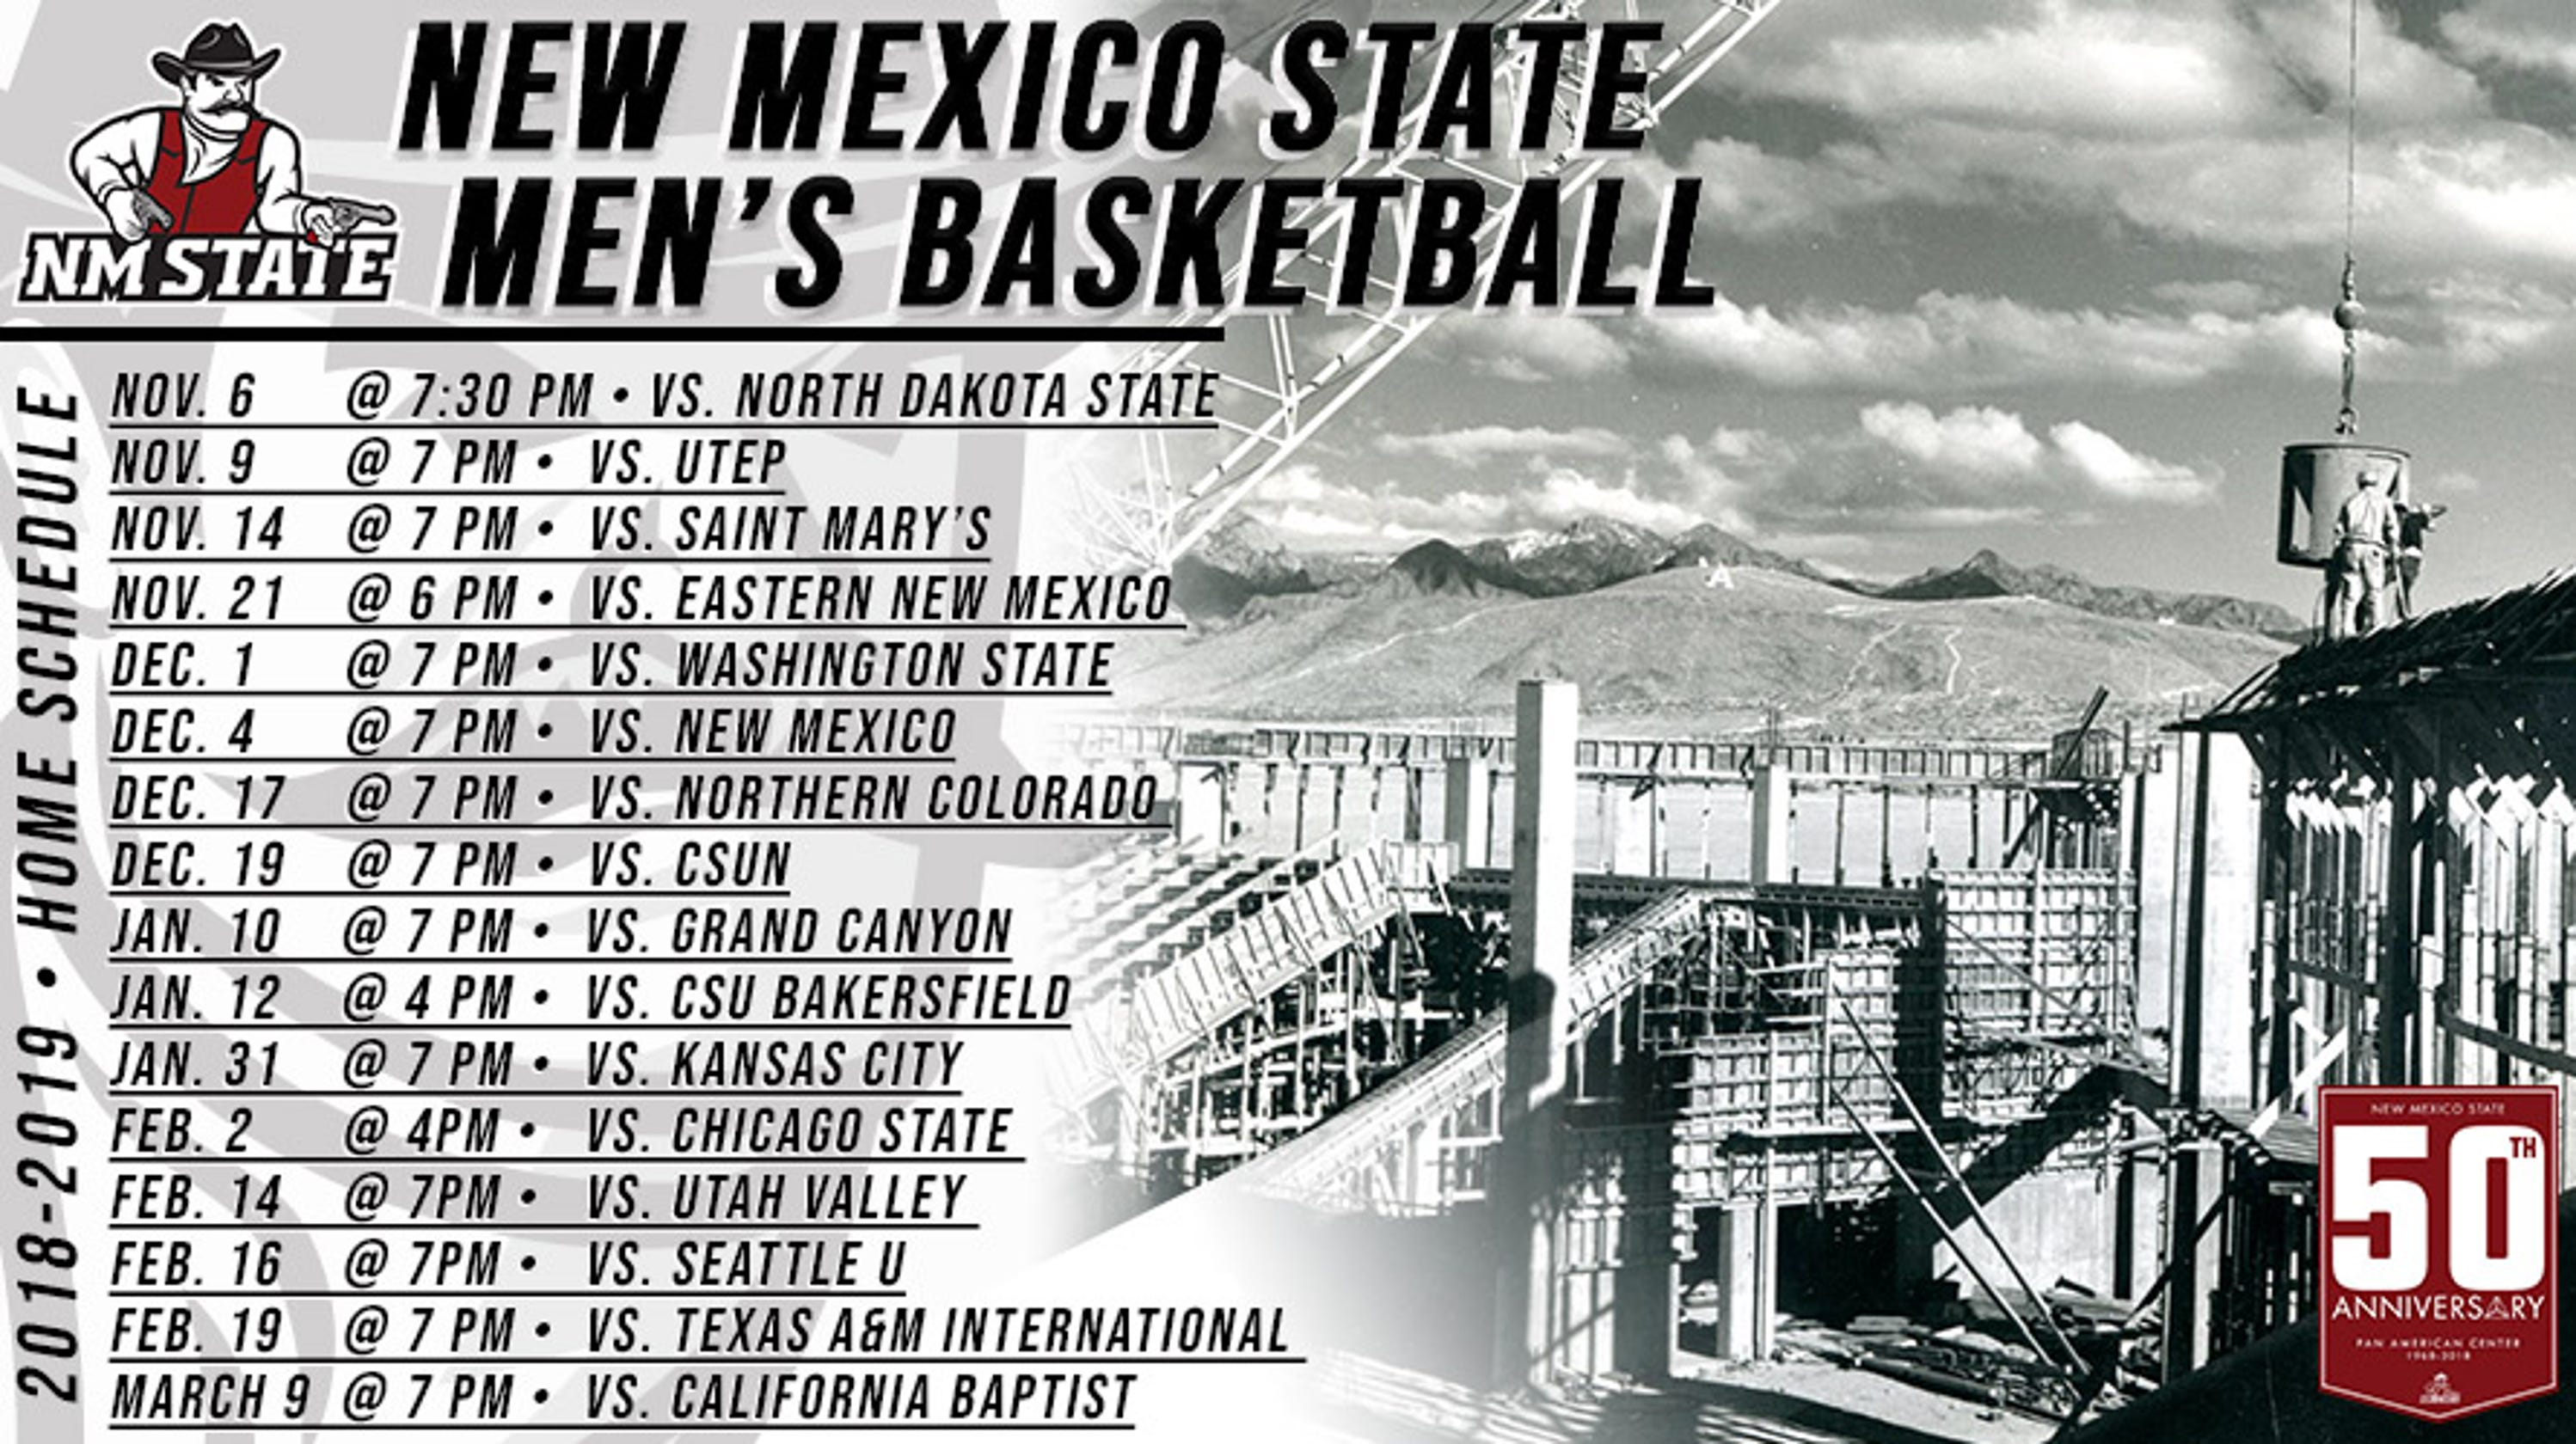 New Mexico State men's basketball releases 2018-19 schedule